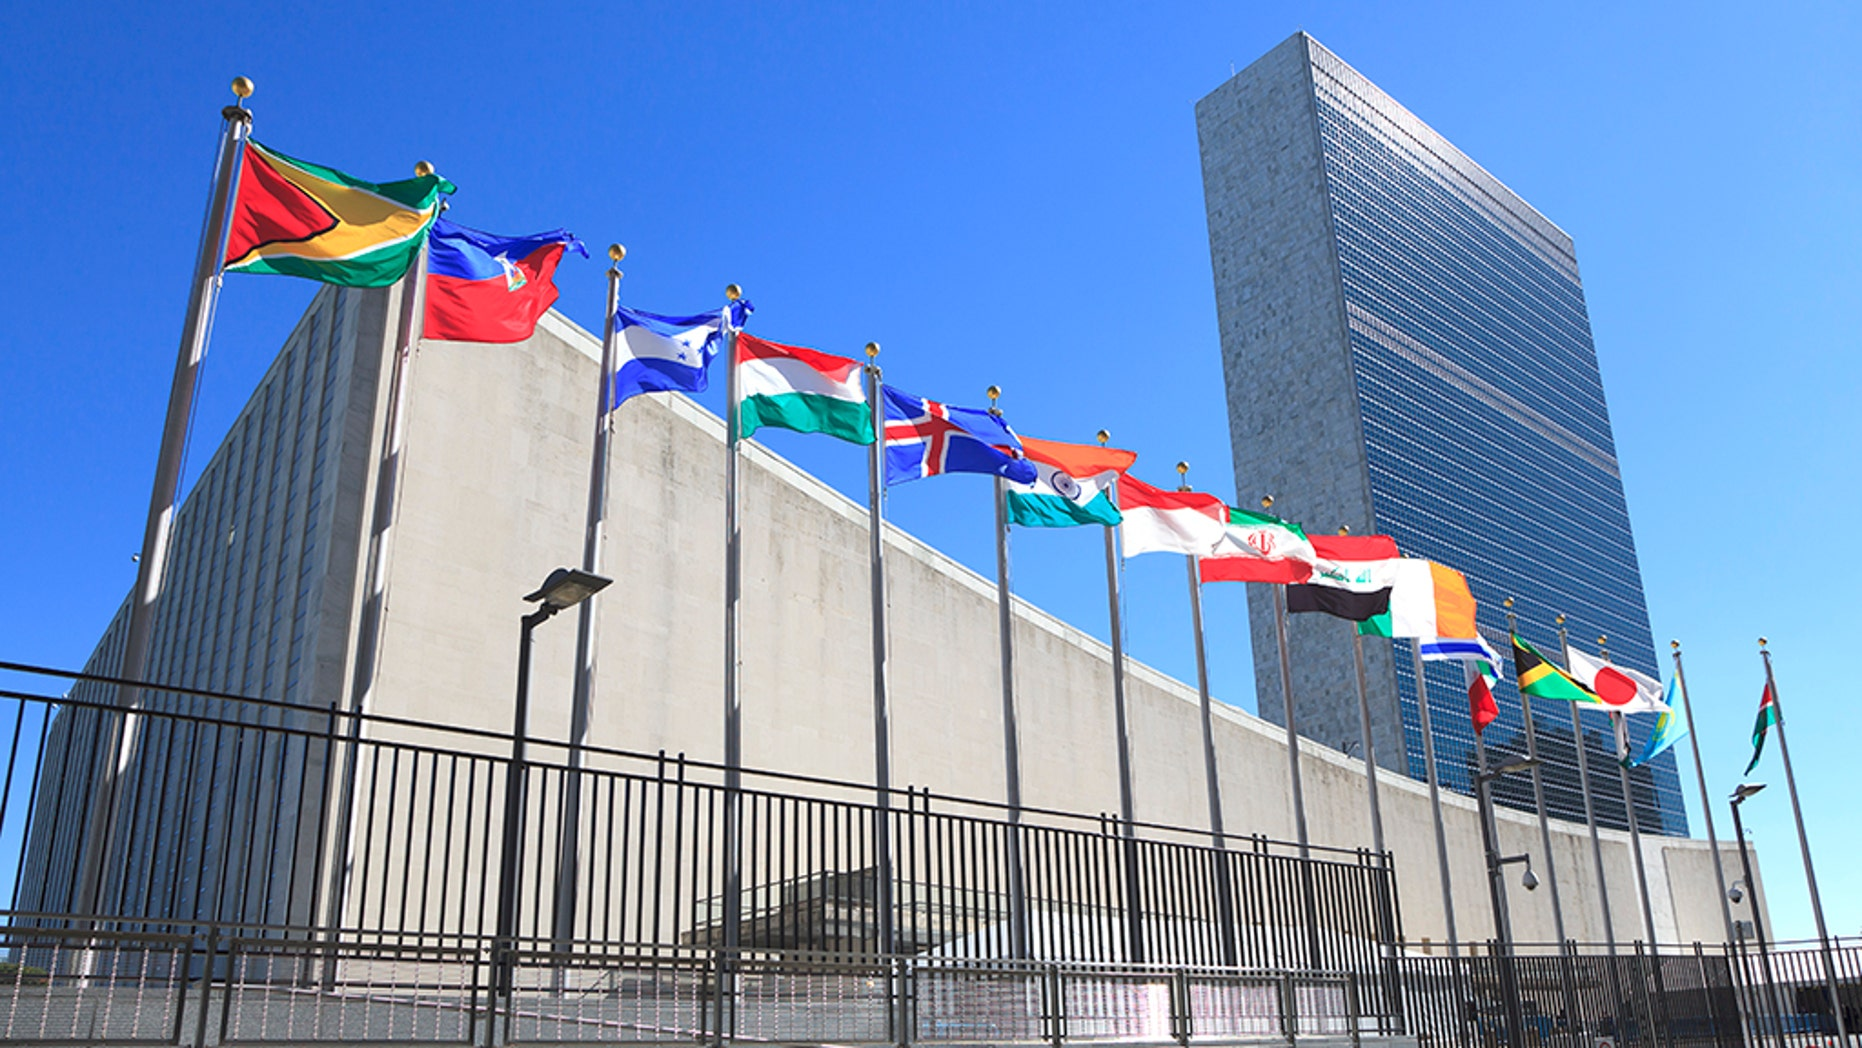 """The United Nations said Tuesday that it received 54 allegations of sexual abuse and exploitation in the first three months of 2018 involving the entire U.N. system and non-governmental groups implementing U.N. programs. The U.N. has said that """"combating this scourge, and helping and empowering those who have been scarred by these egregious acts, continue to be key priorities."""" (iStock)"""